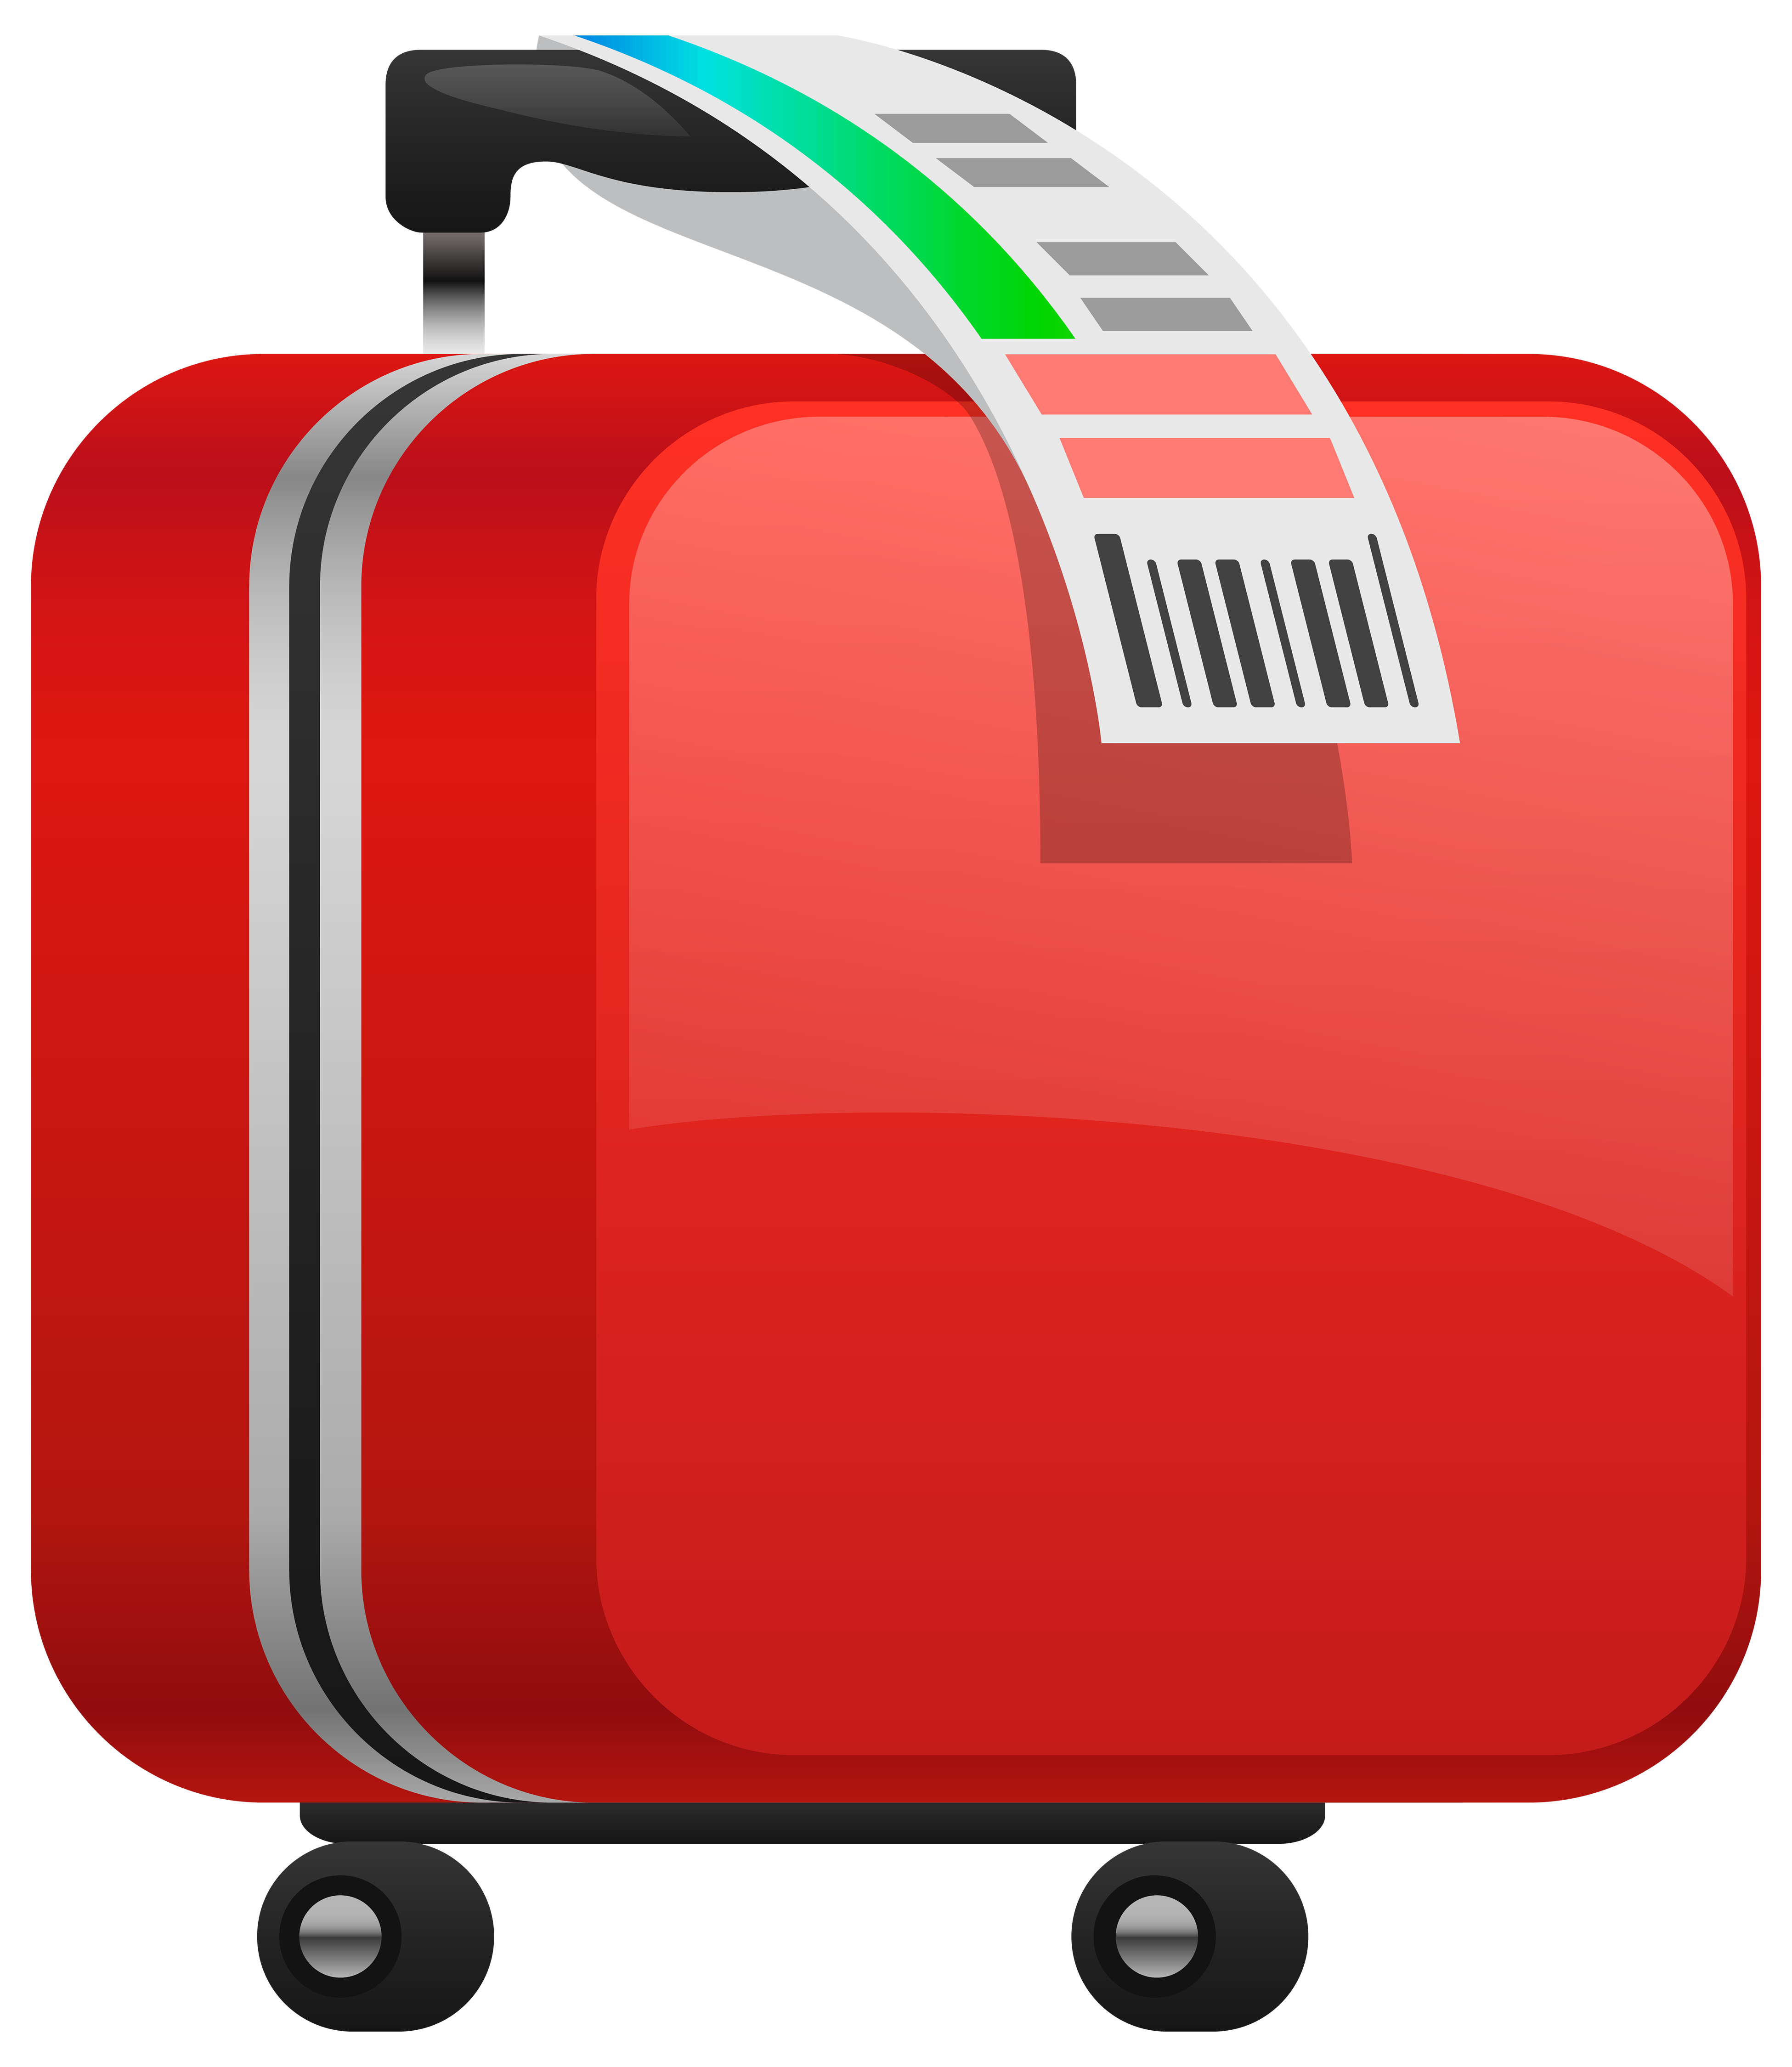 Download suitcase png image. Footsteps clipart red